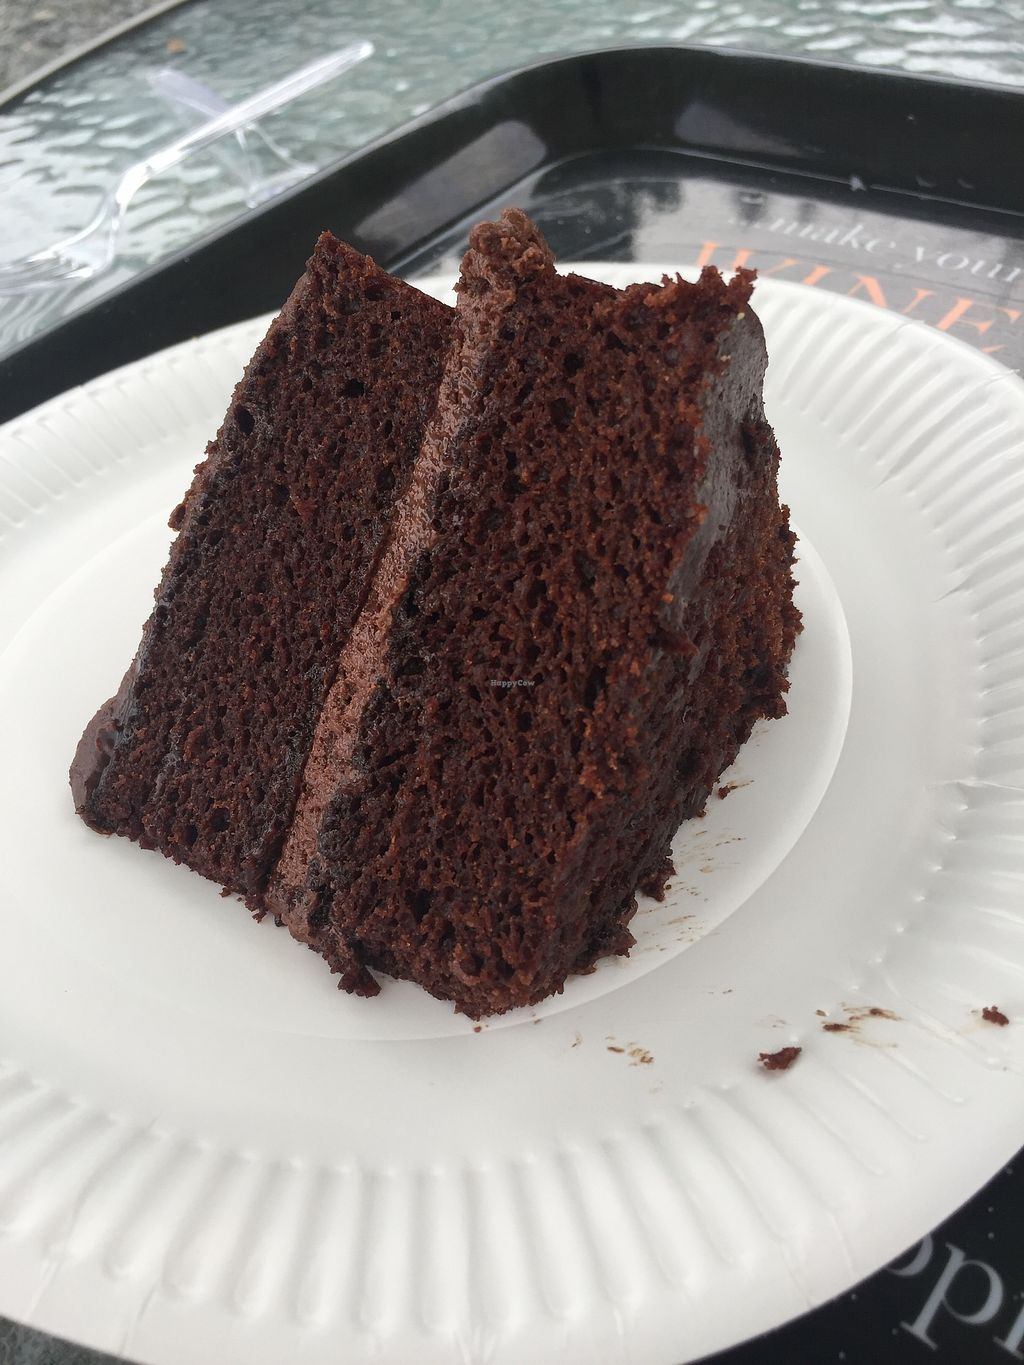 """Photo of The Retreat Animal Rescue Farm Sanctuary and Cafe  by <a href=""""/members/profile/TARAMCDONALD"""">TARAMCDONALD</a> <br/>Delicious homemade vegan chocolate cake x <br/> July 22, 2017  - <a href='/contact/abuse/image/93600/283384'>Report</a>"""